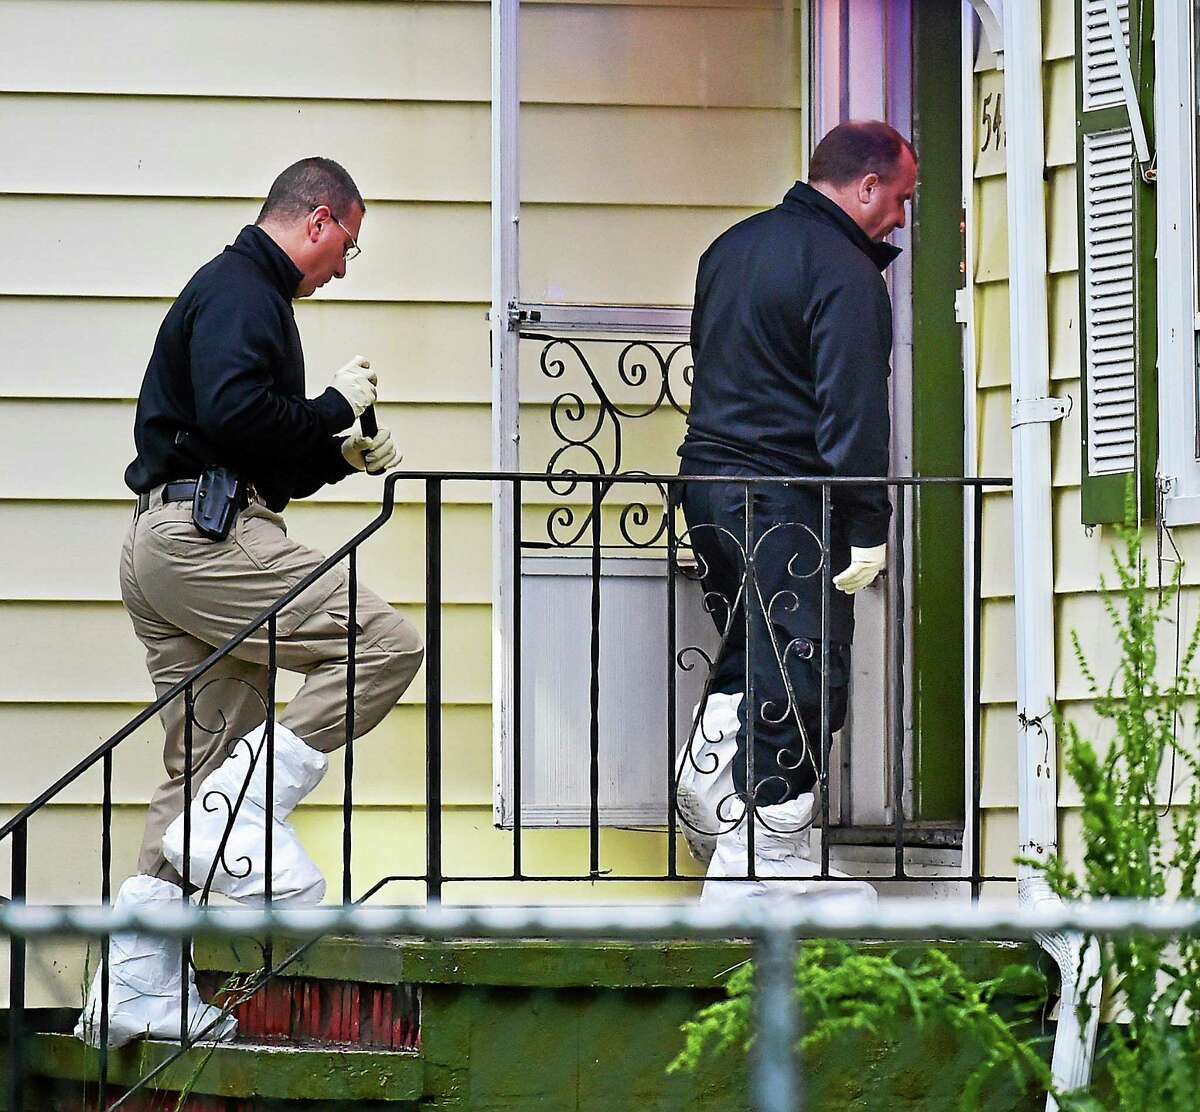 Members of the Connecticut State Police Major Crime Squad enter the home at 541 Strong St. in East Haven Tuesday, where two young children were found dead.